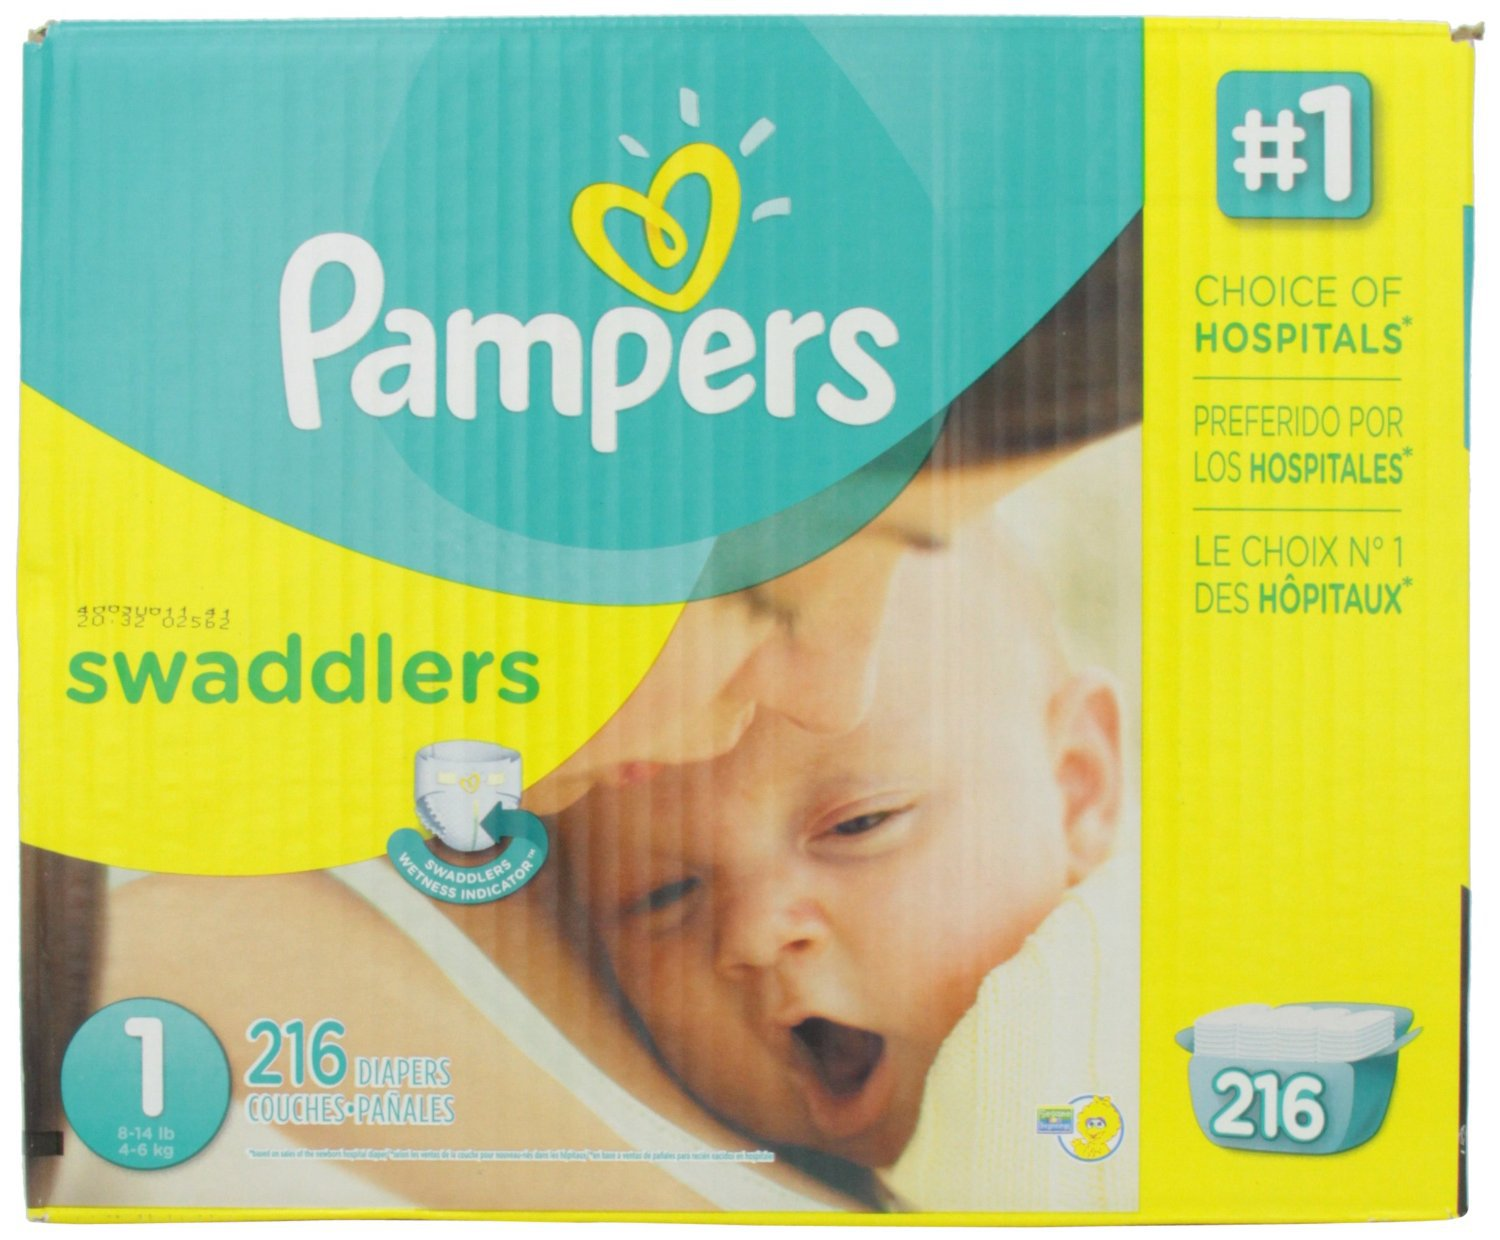 Pampers Swaddlers Diapers Size 1 - 216 Count